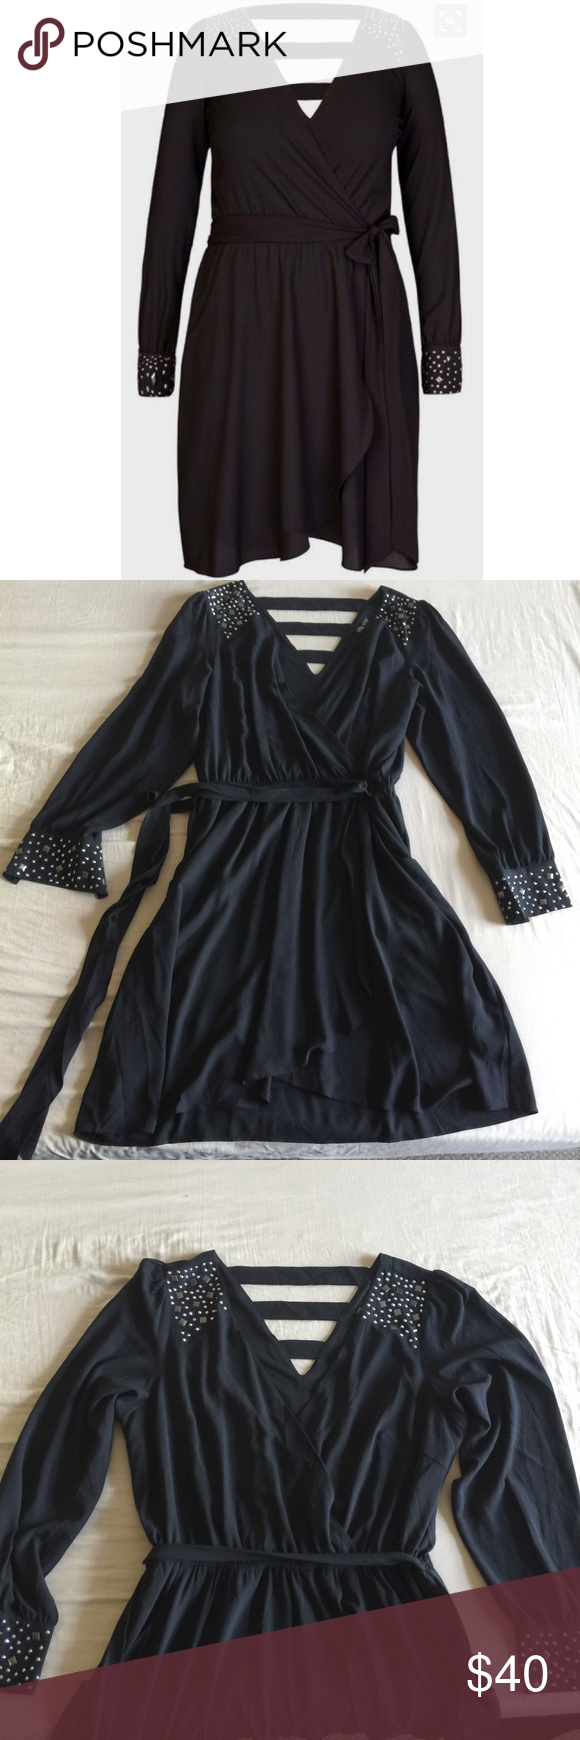 City Chic Stud Shoulder Tunic size 16 City Chic Studded Shoulder Black Tunic size S (16 US). Deep V-neck faux wrap embellished Tunic/mini dress. NWOT, never worn. Fabric belt, elastic waist and POCKETS! Bust  44 Waist stretches to 40 Hips 50 Length 19 City Chic Dresses